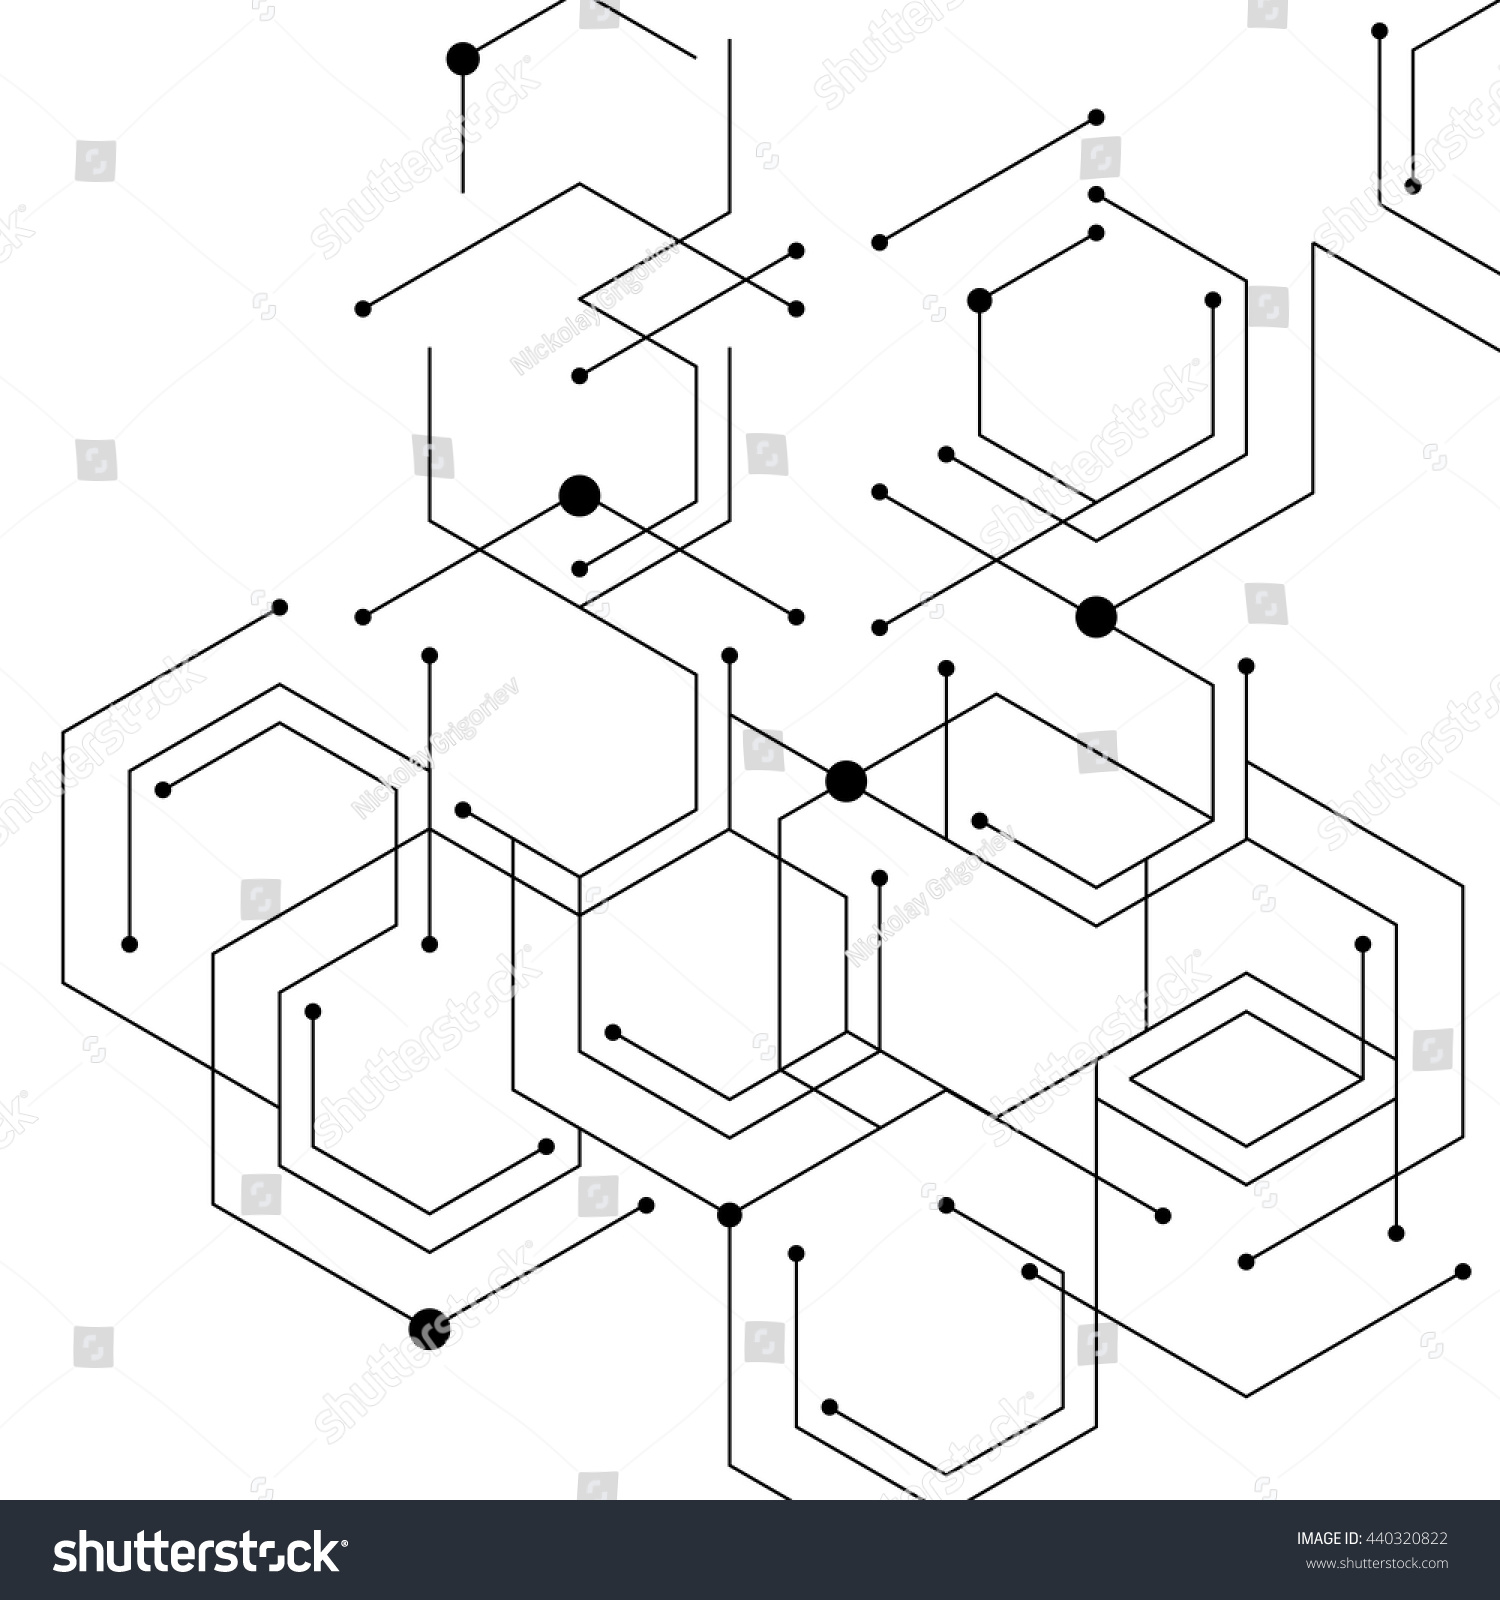 Drawing With Lines And Dots : Geometric lines dots line pattern modern stock vector